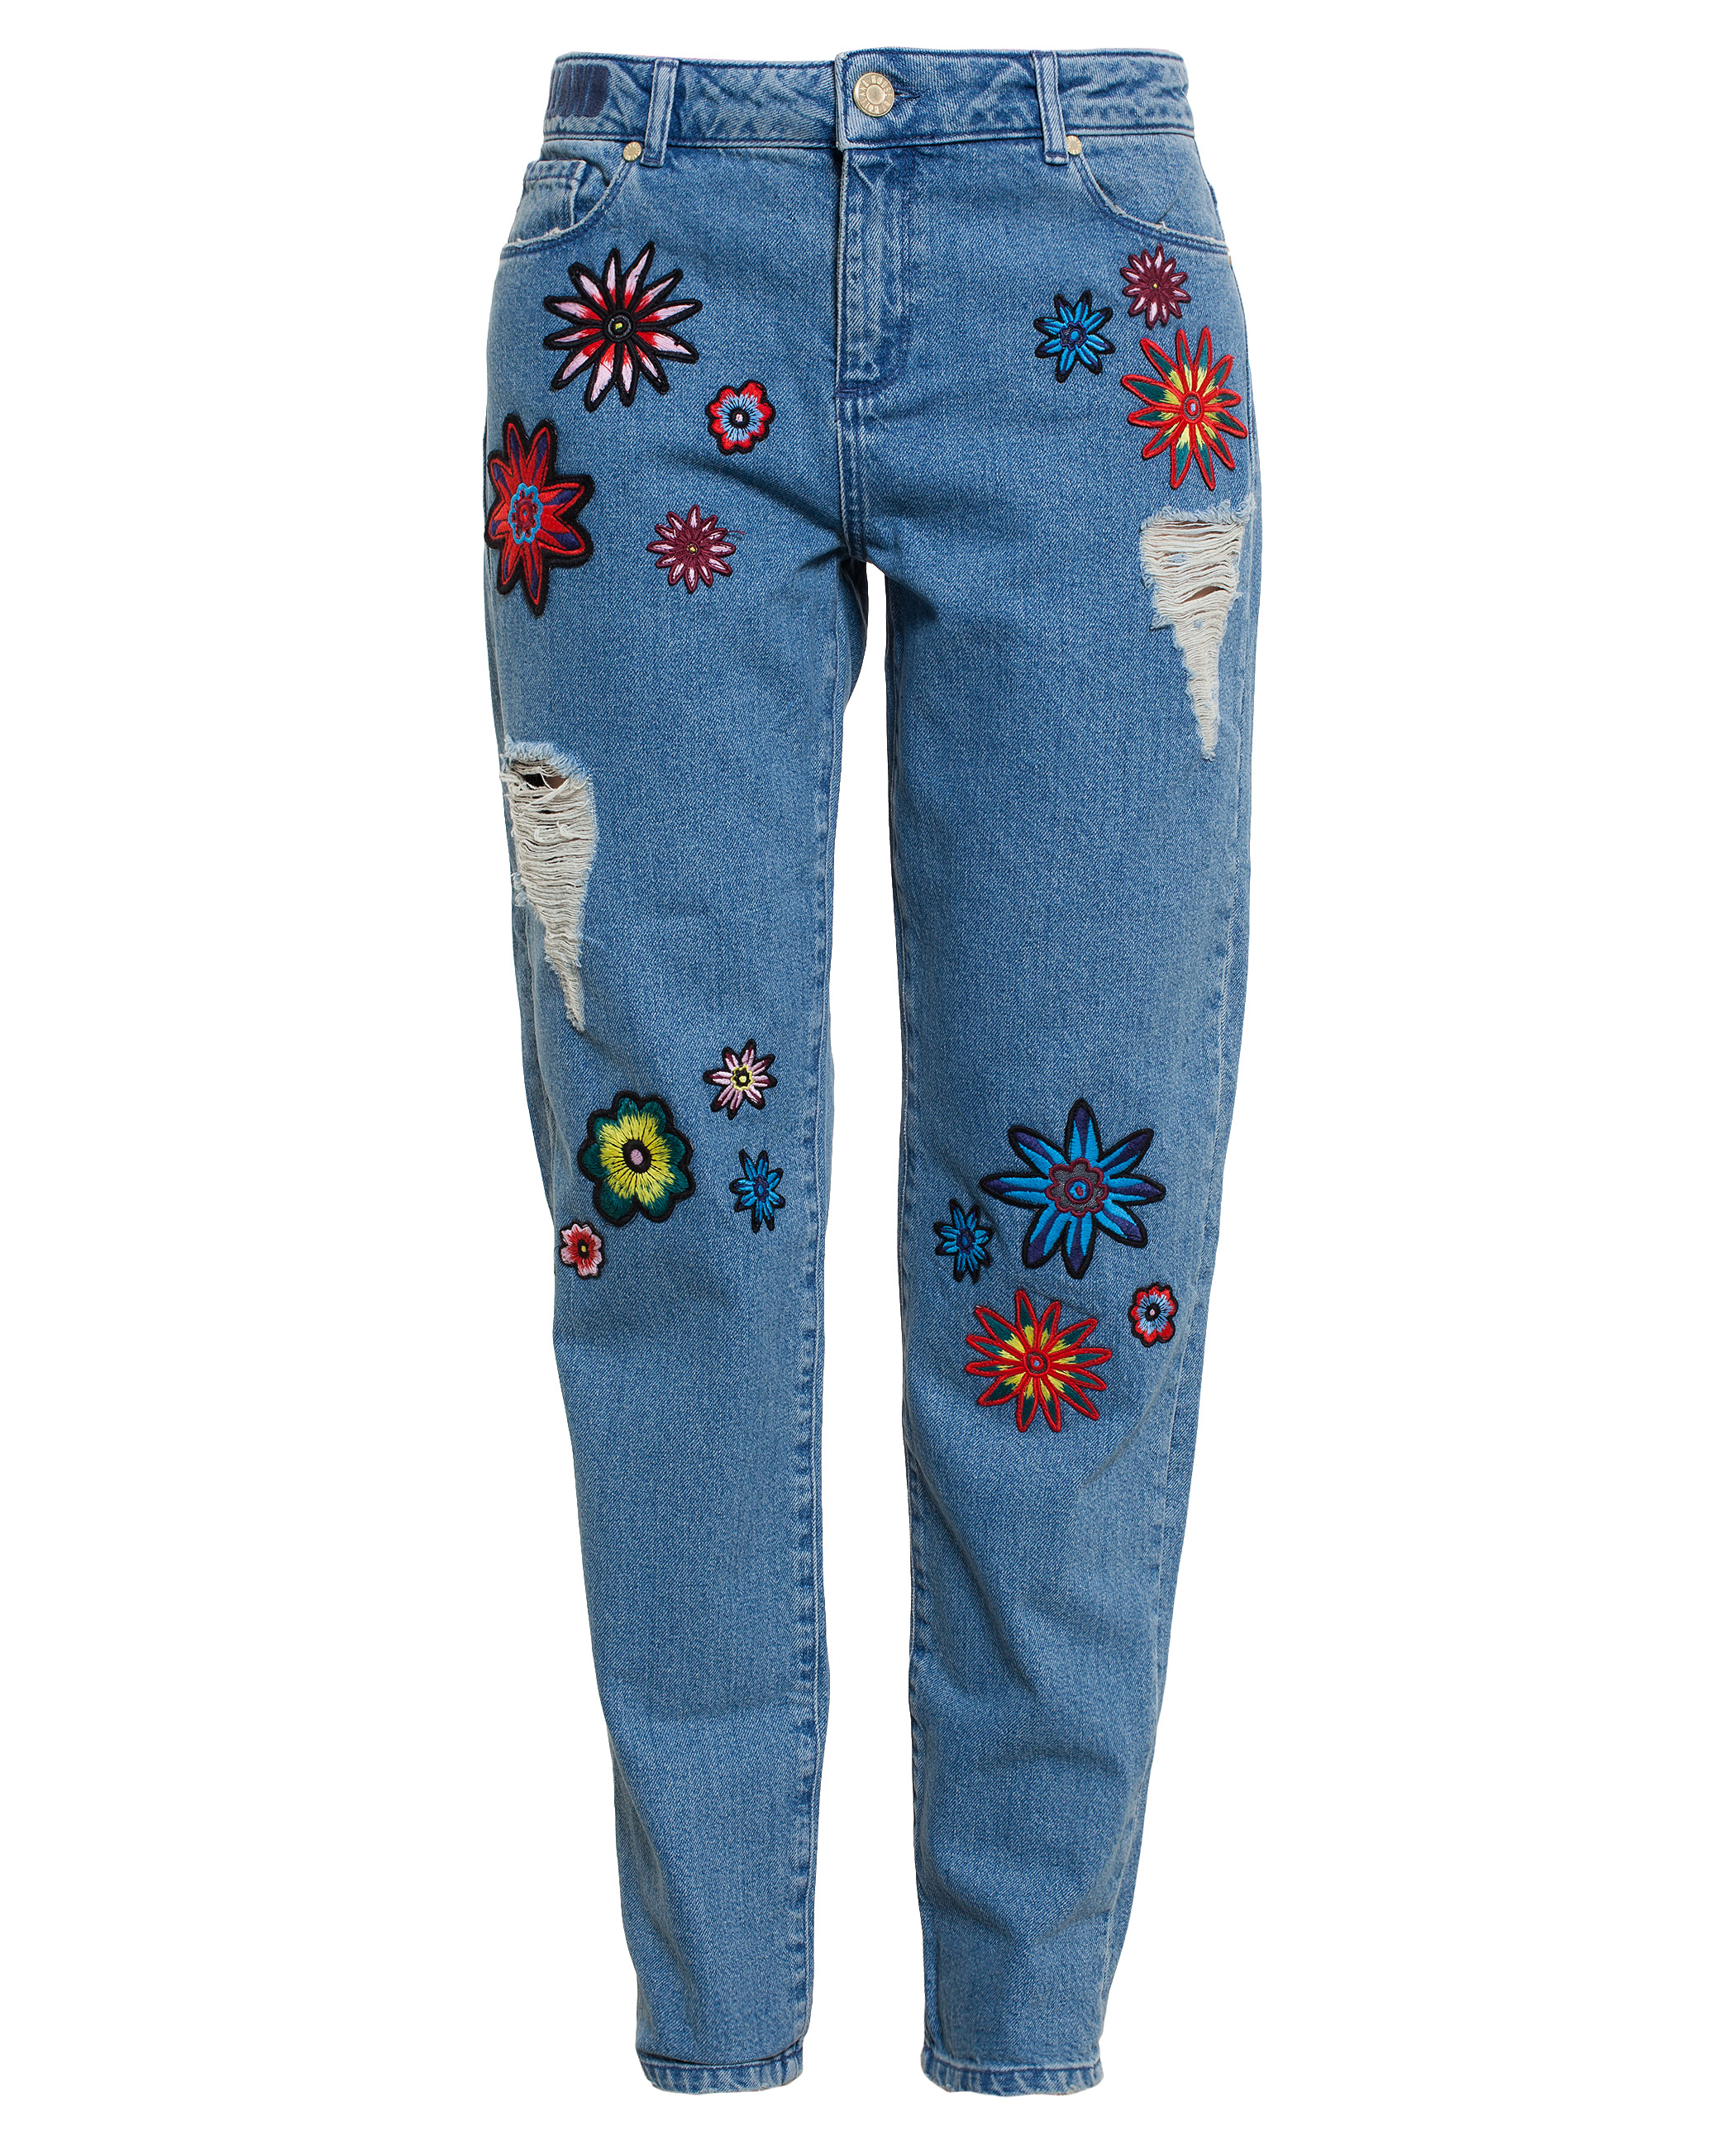 House of holland jeans with floral embroidery in blue lyst House jeansy